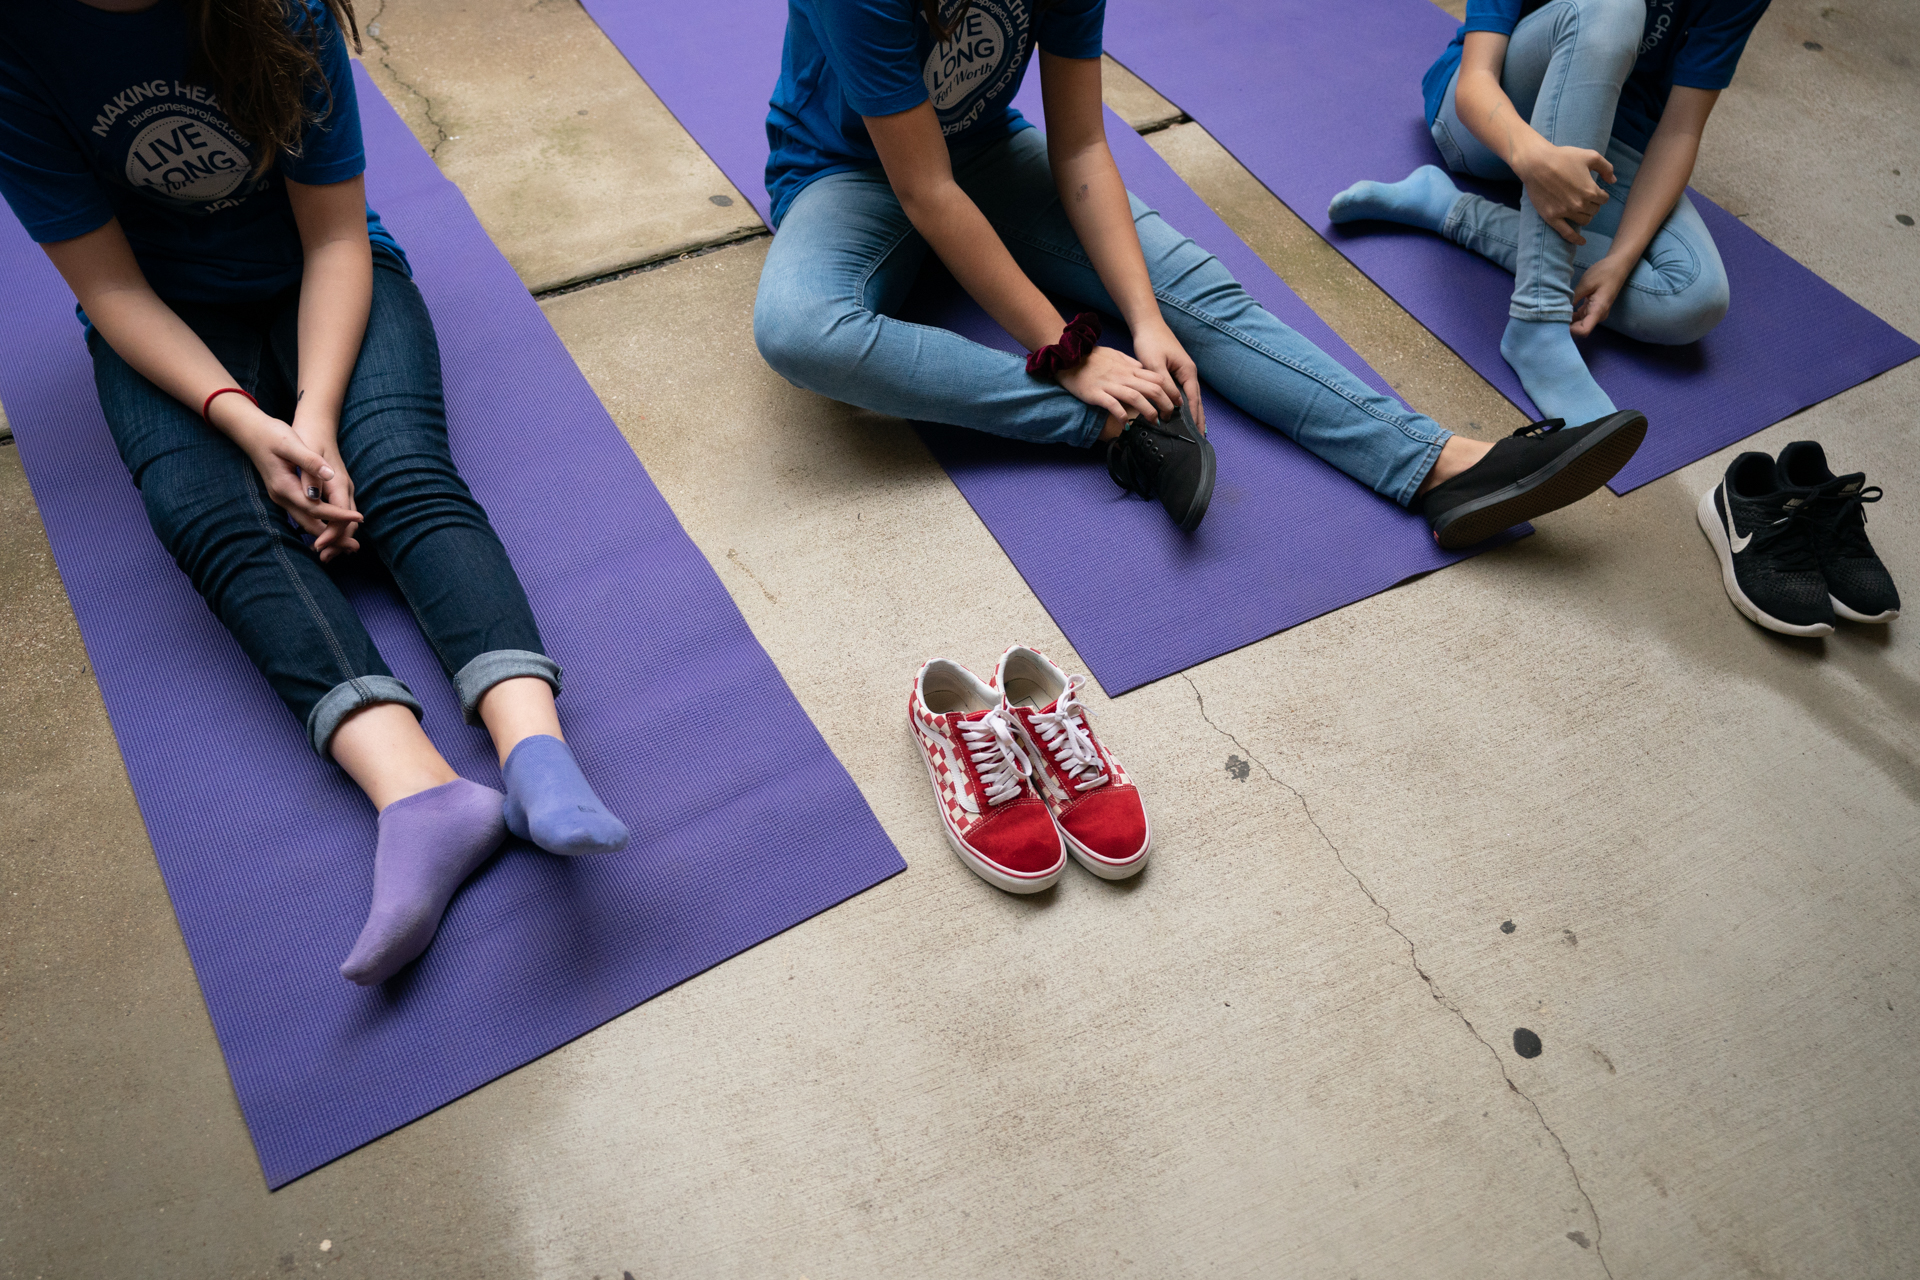 0015_2018-McLain-Sharecare-mid-school-yoga-243-2.jpg